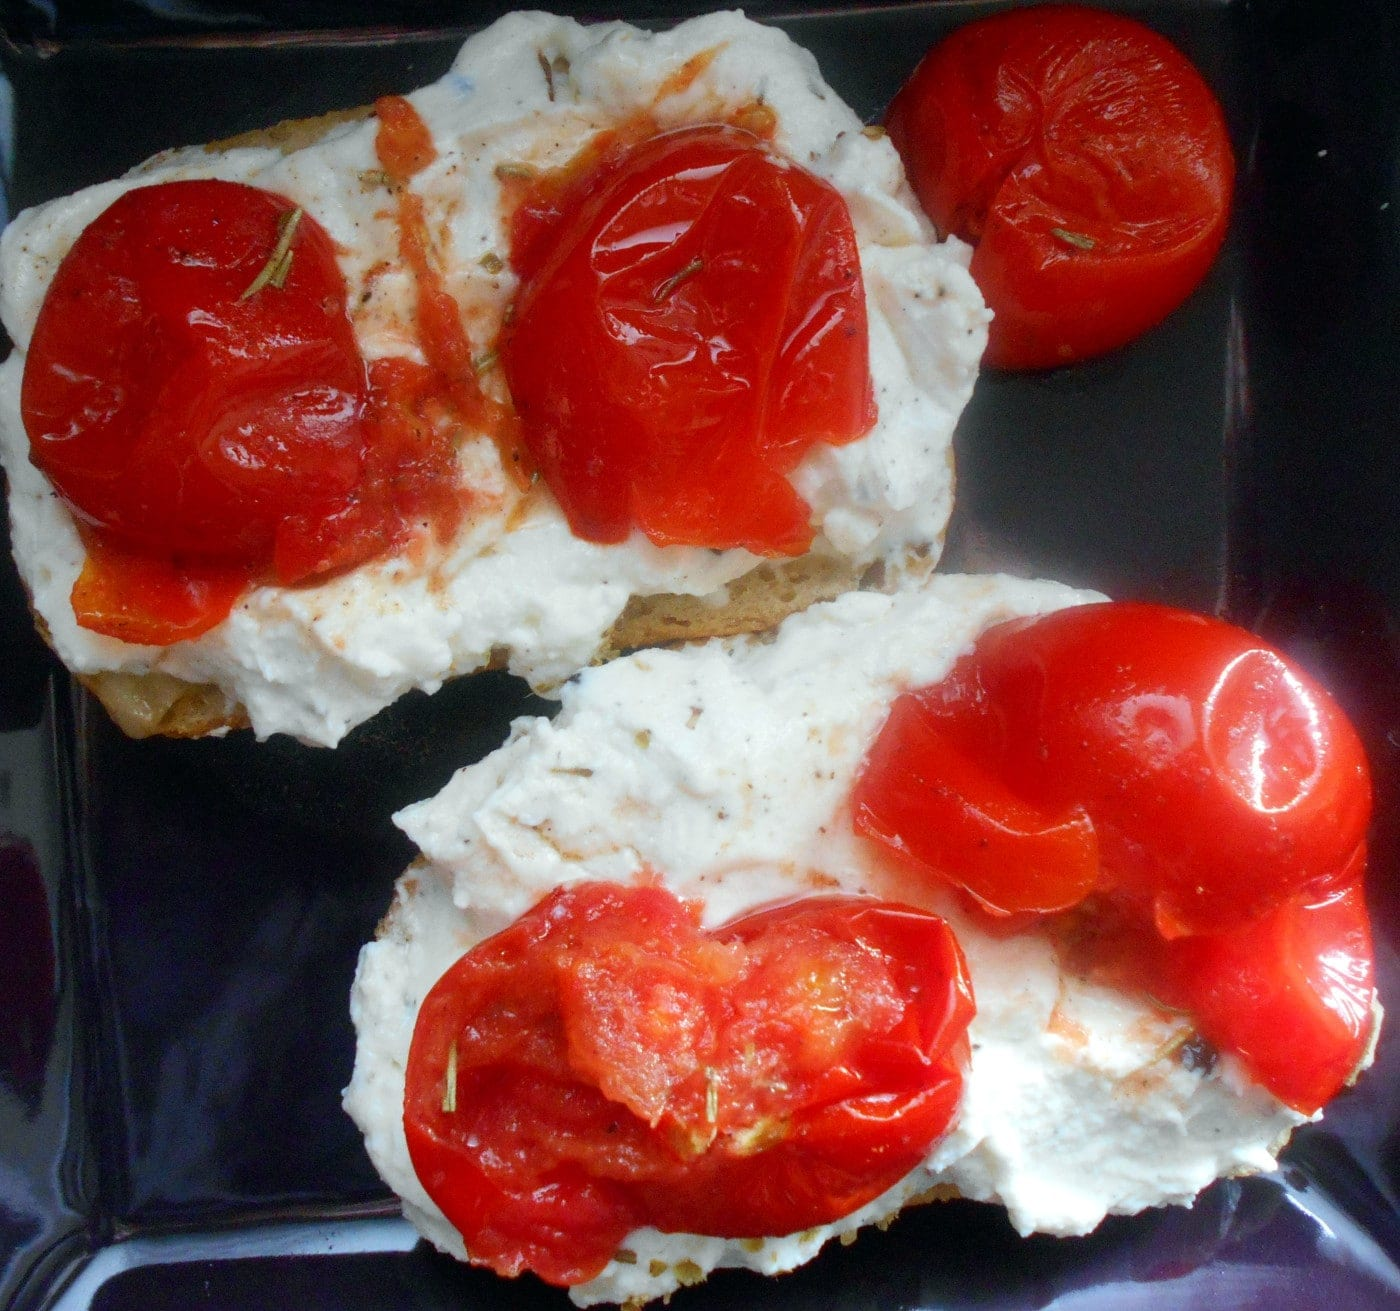 Overhead view of 2 slices of a bread with ricotta cheese and camapari tomatoes - grilled cheese sandwich